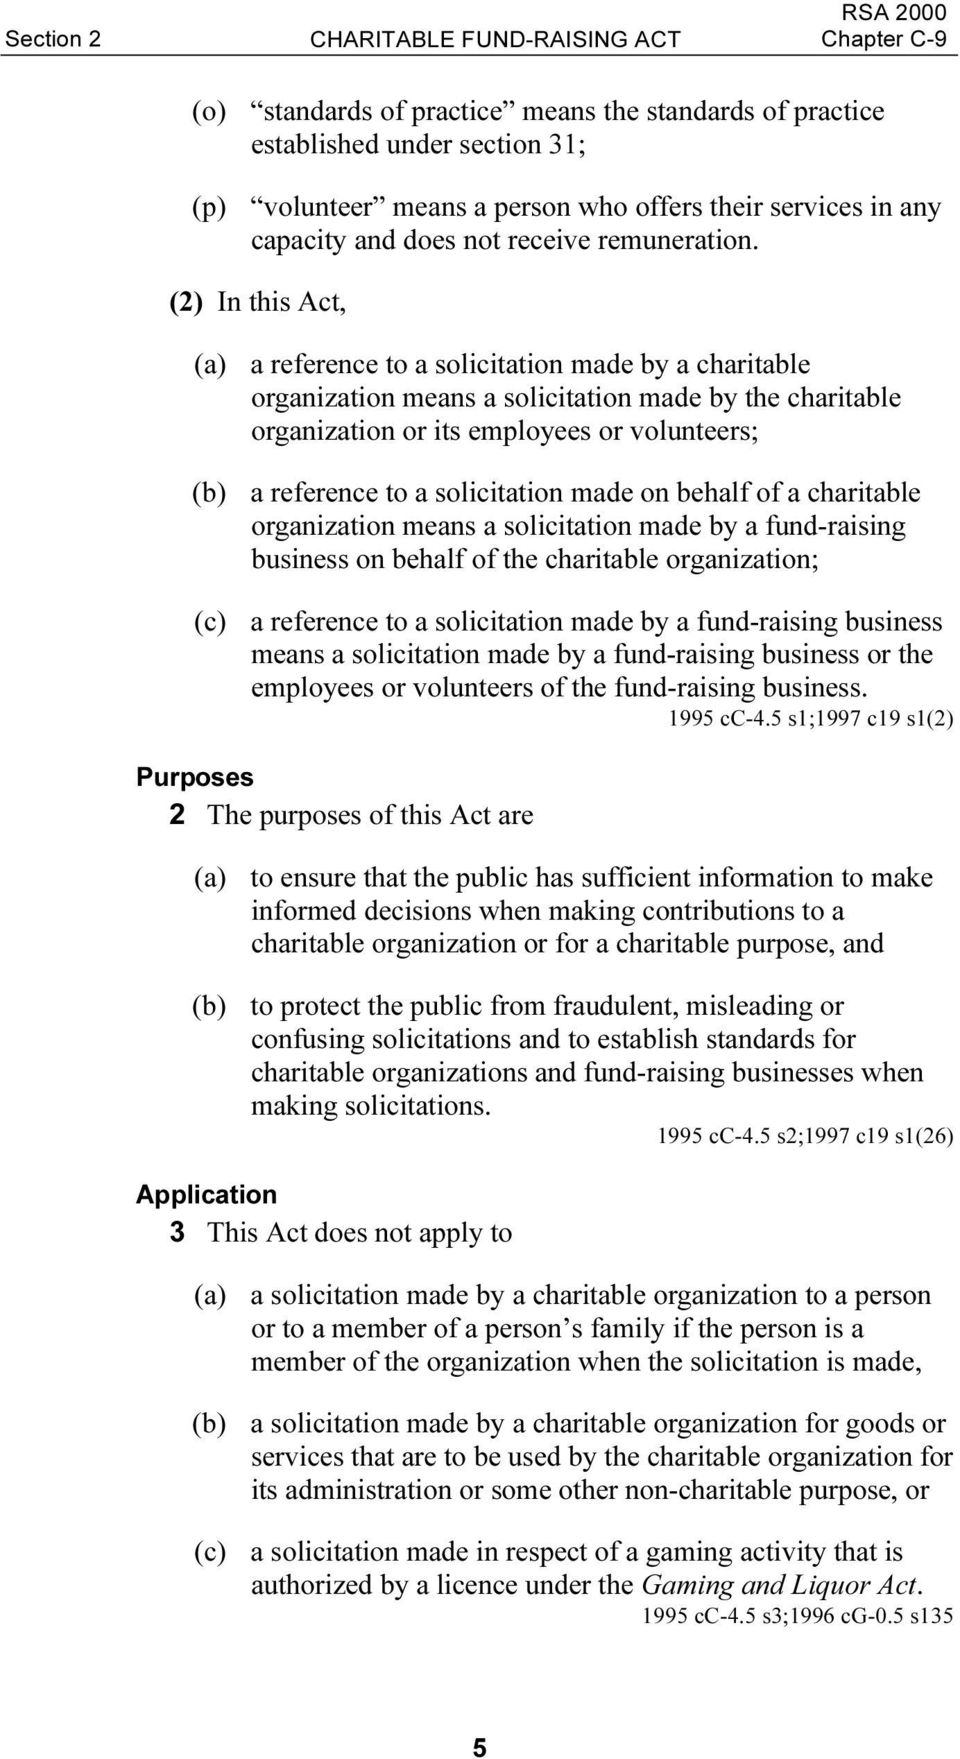 (2) In this Act, (a) a reference to a solicitation made by a charitable organization means a solicitation made by the charitable organization or its employees or volunteers; (b) a reference to a